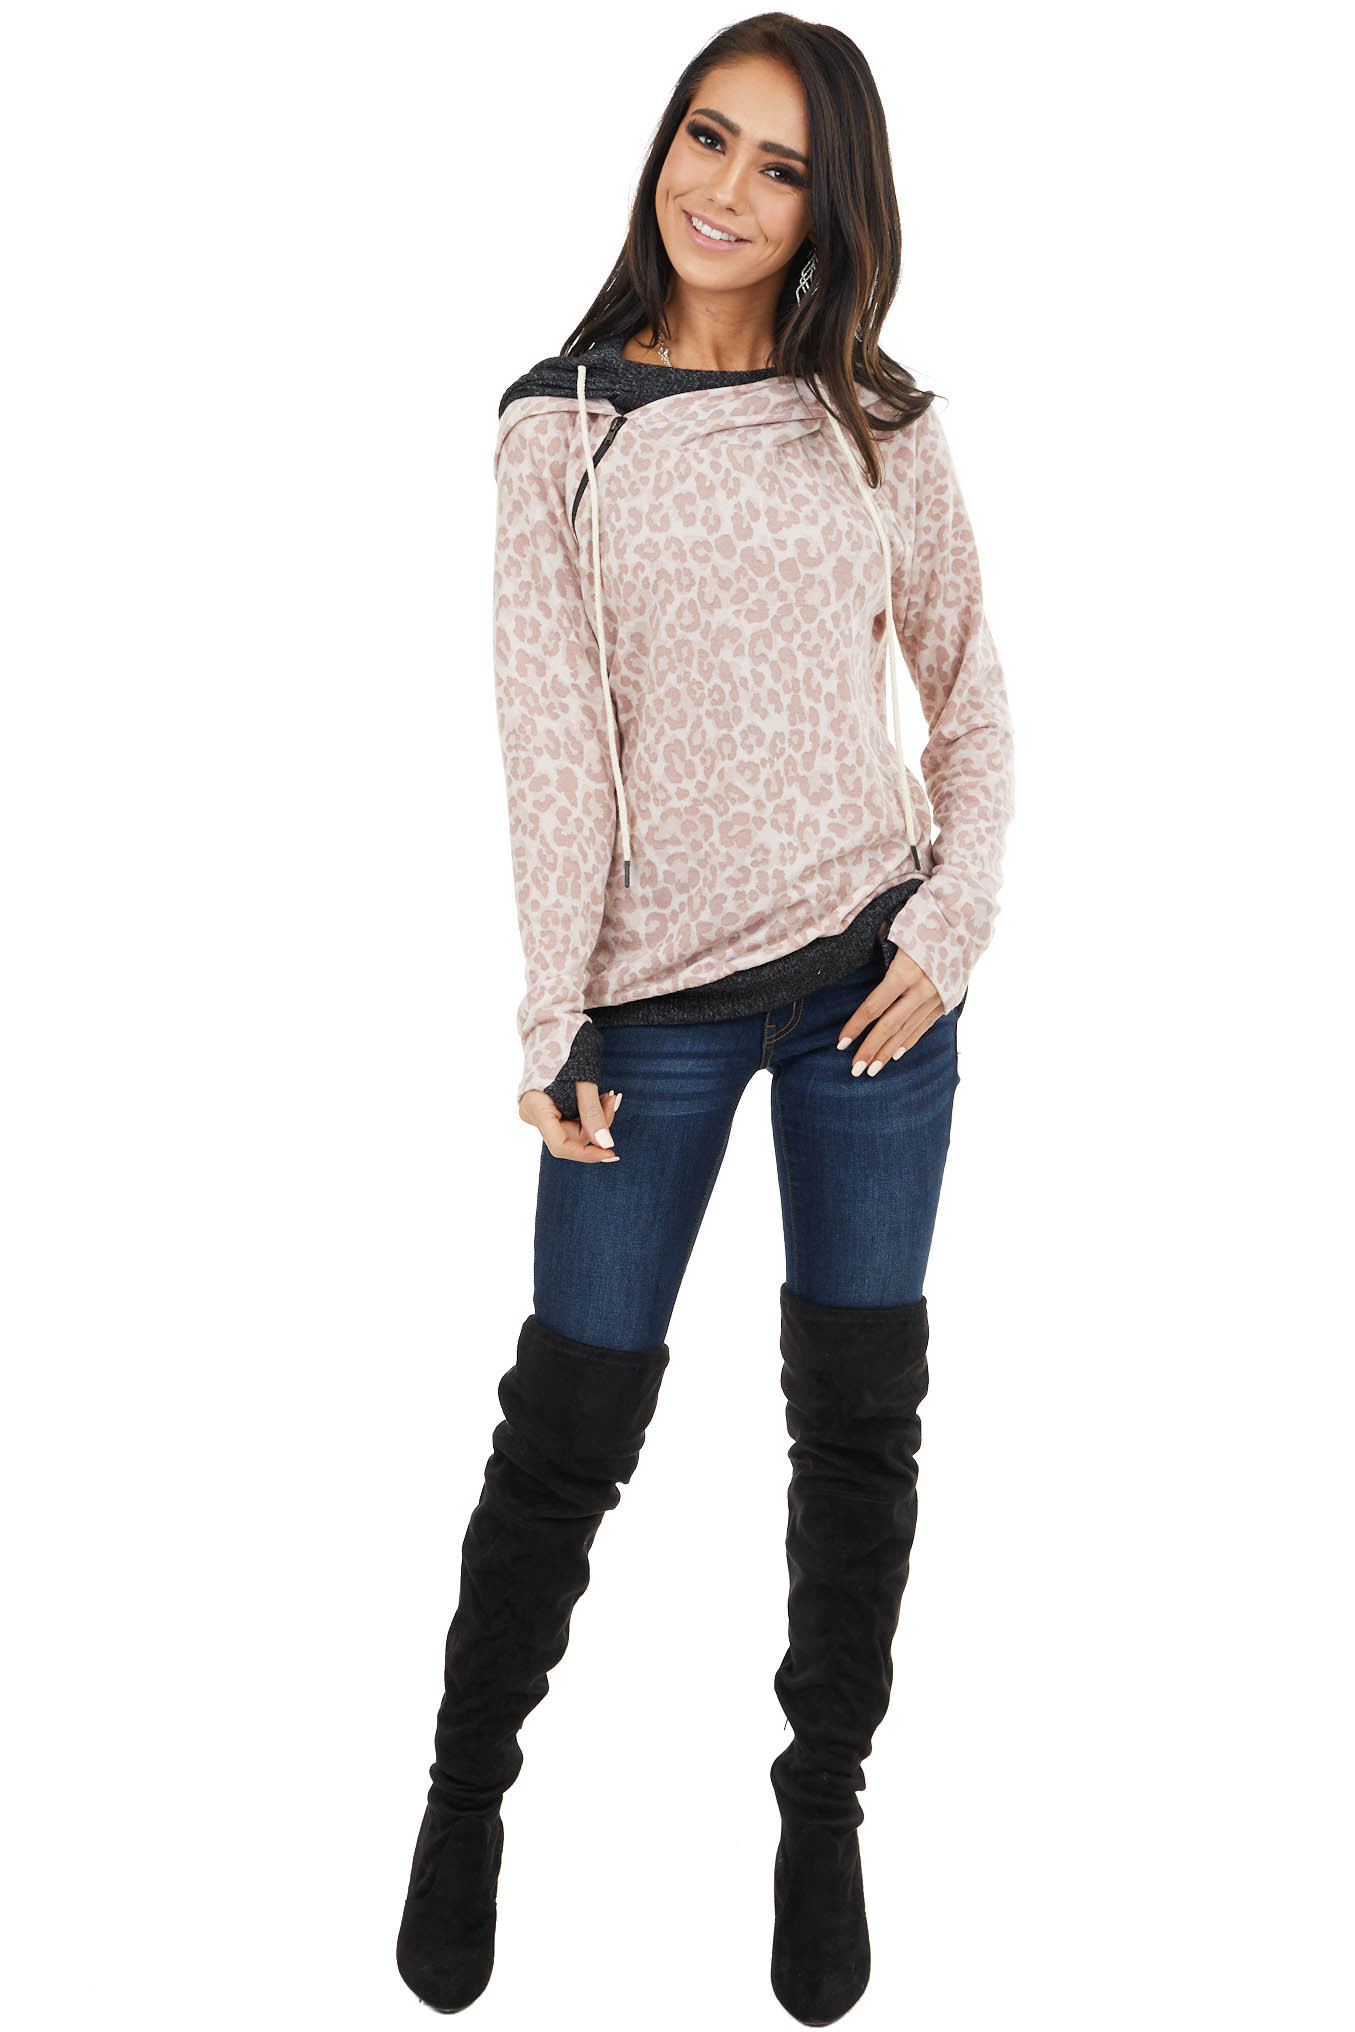 Blush and Dusty Rose Leopard Print Lightweight Hoodie